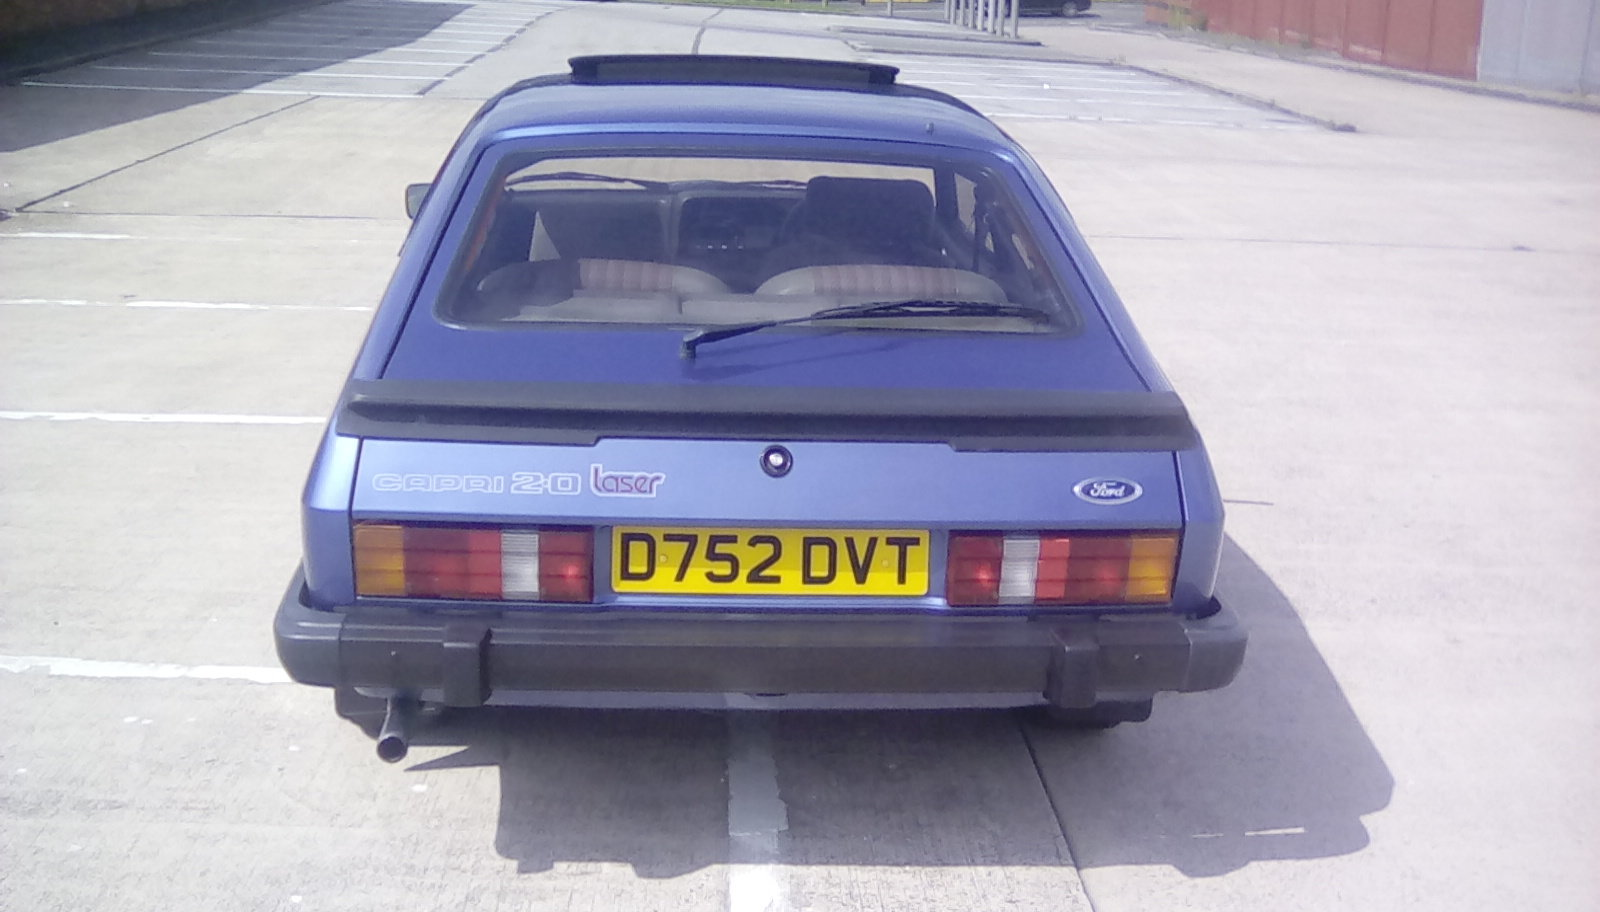 1987 Ford Capri 2.0 laser SOLD (picture 6 of 6)